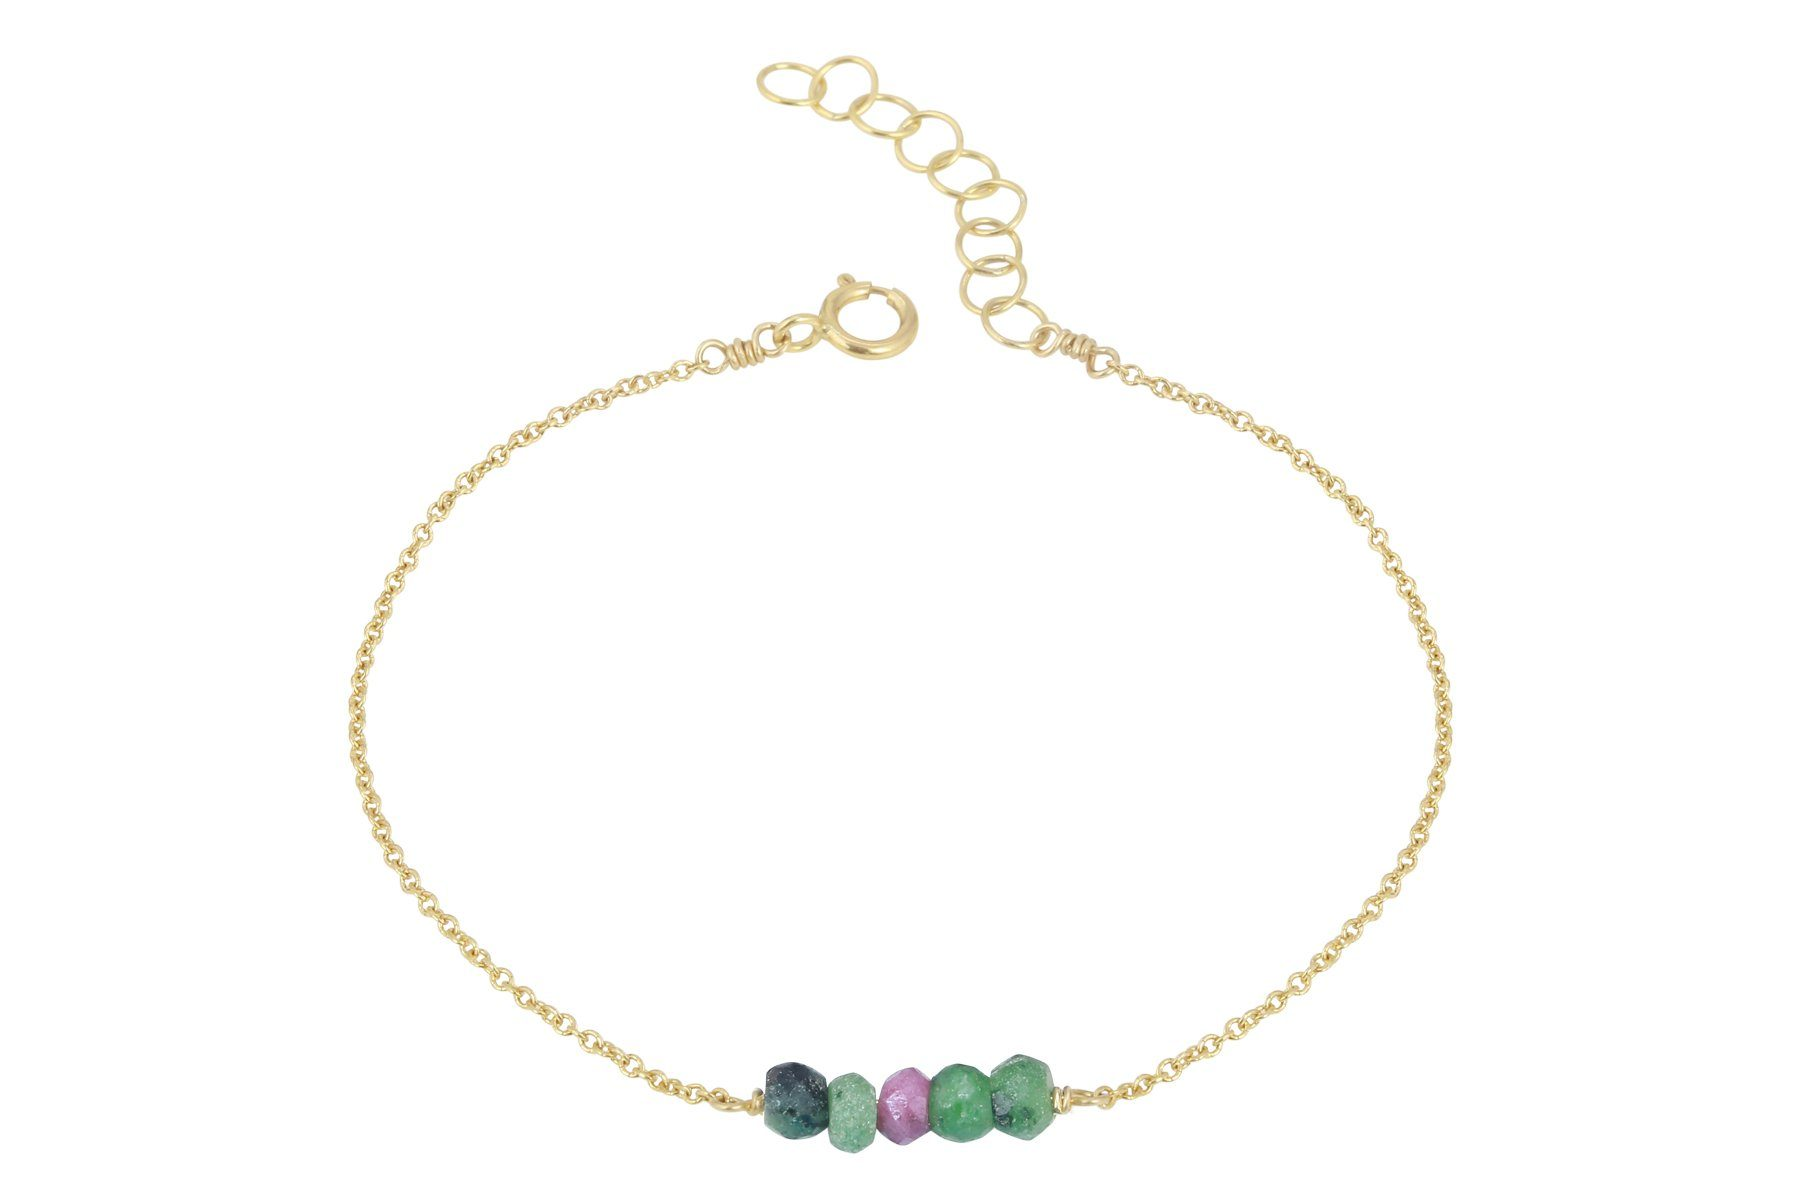 Elements- Ruby in Zoisite 5 stone gold filled adjustable chain bracelet - Amanda K Lockrow